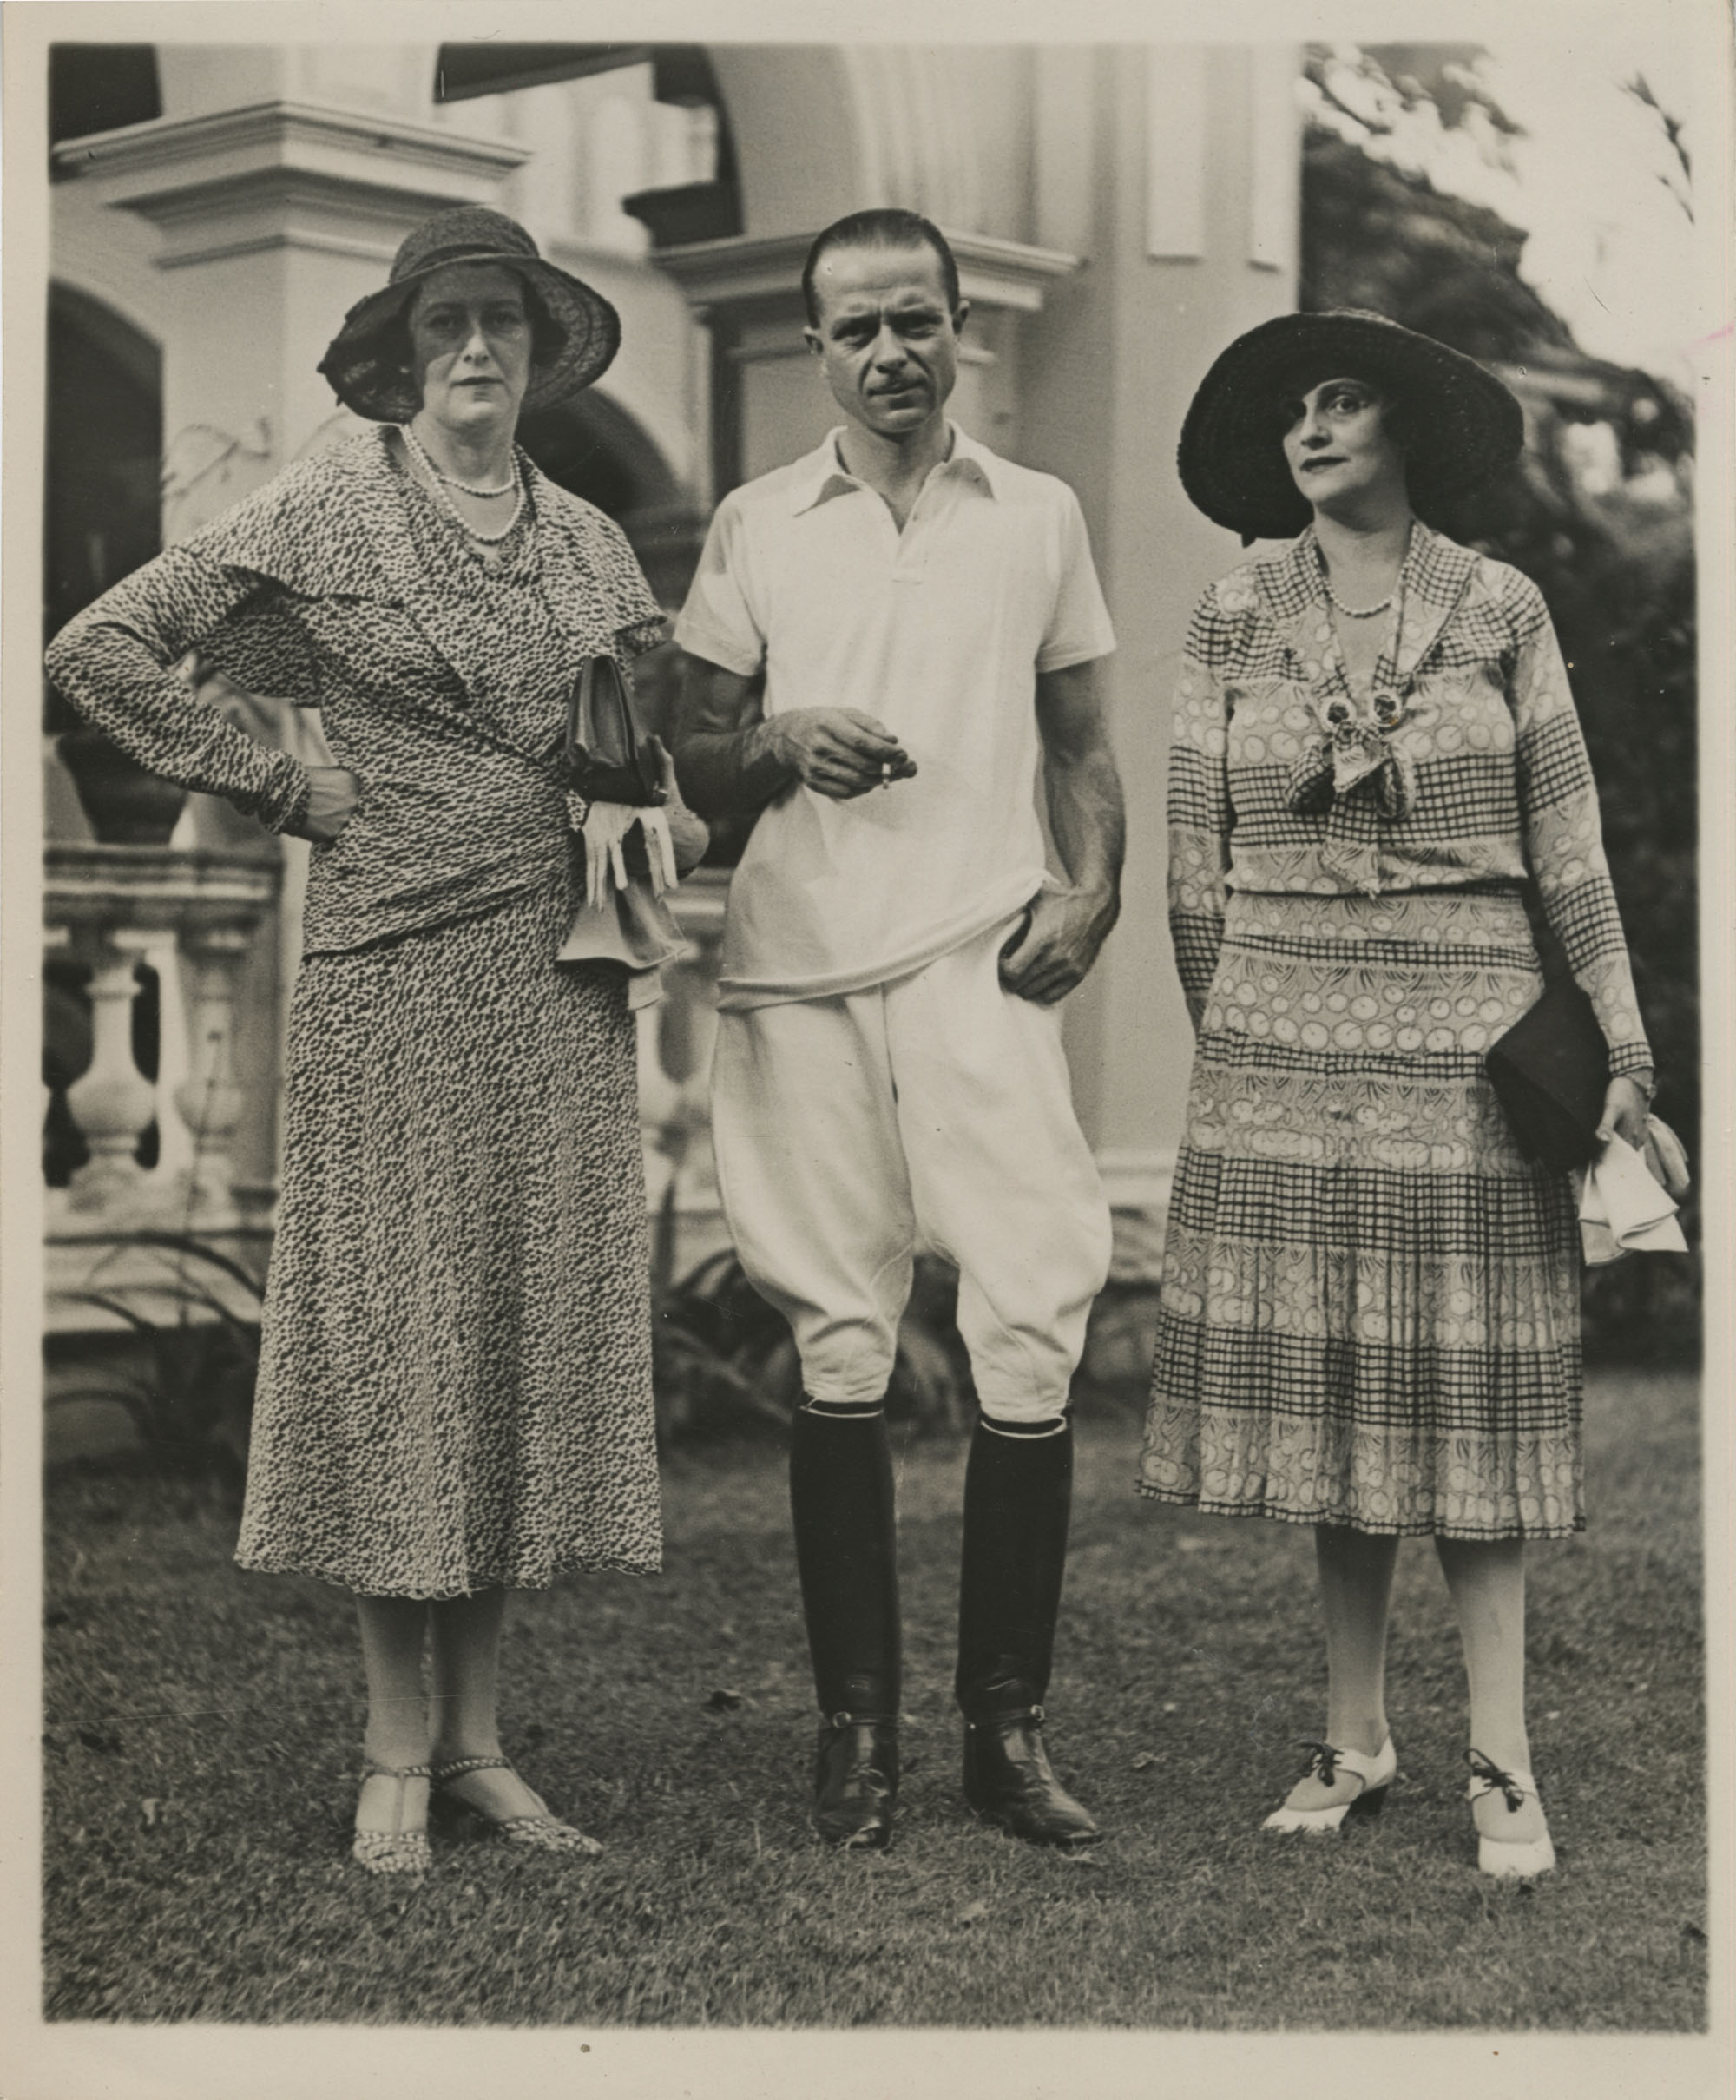 Mario Pansa, the Duchess of Sutherland, and Audrey Parr